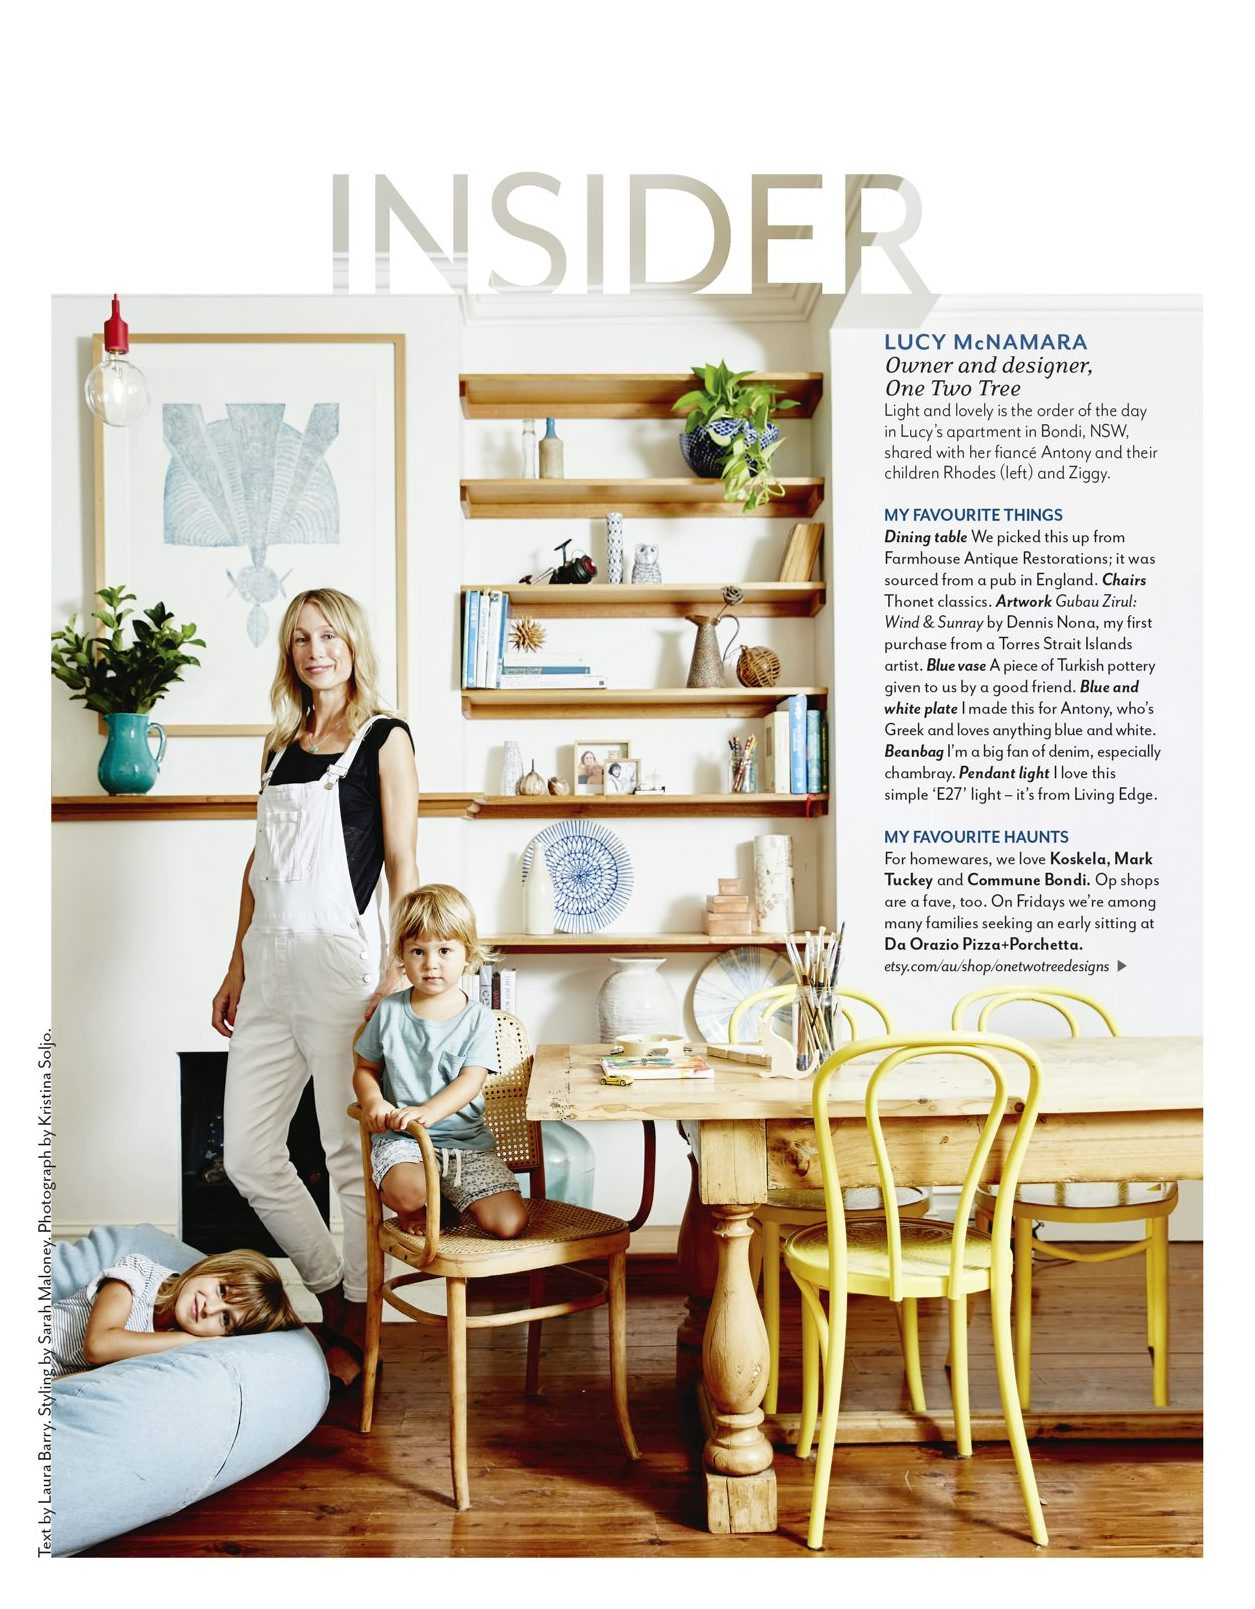 One Two Tree House and Garden magazine